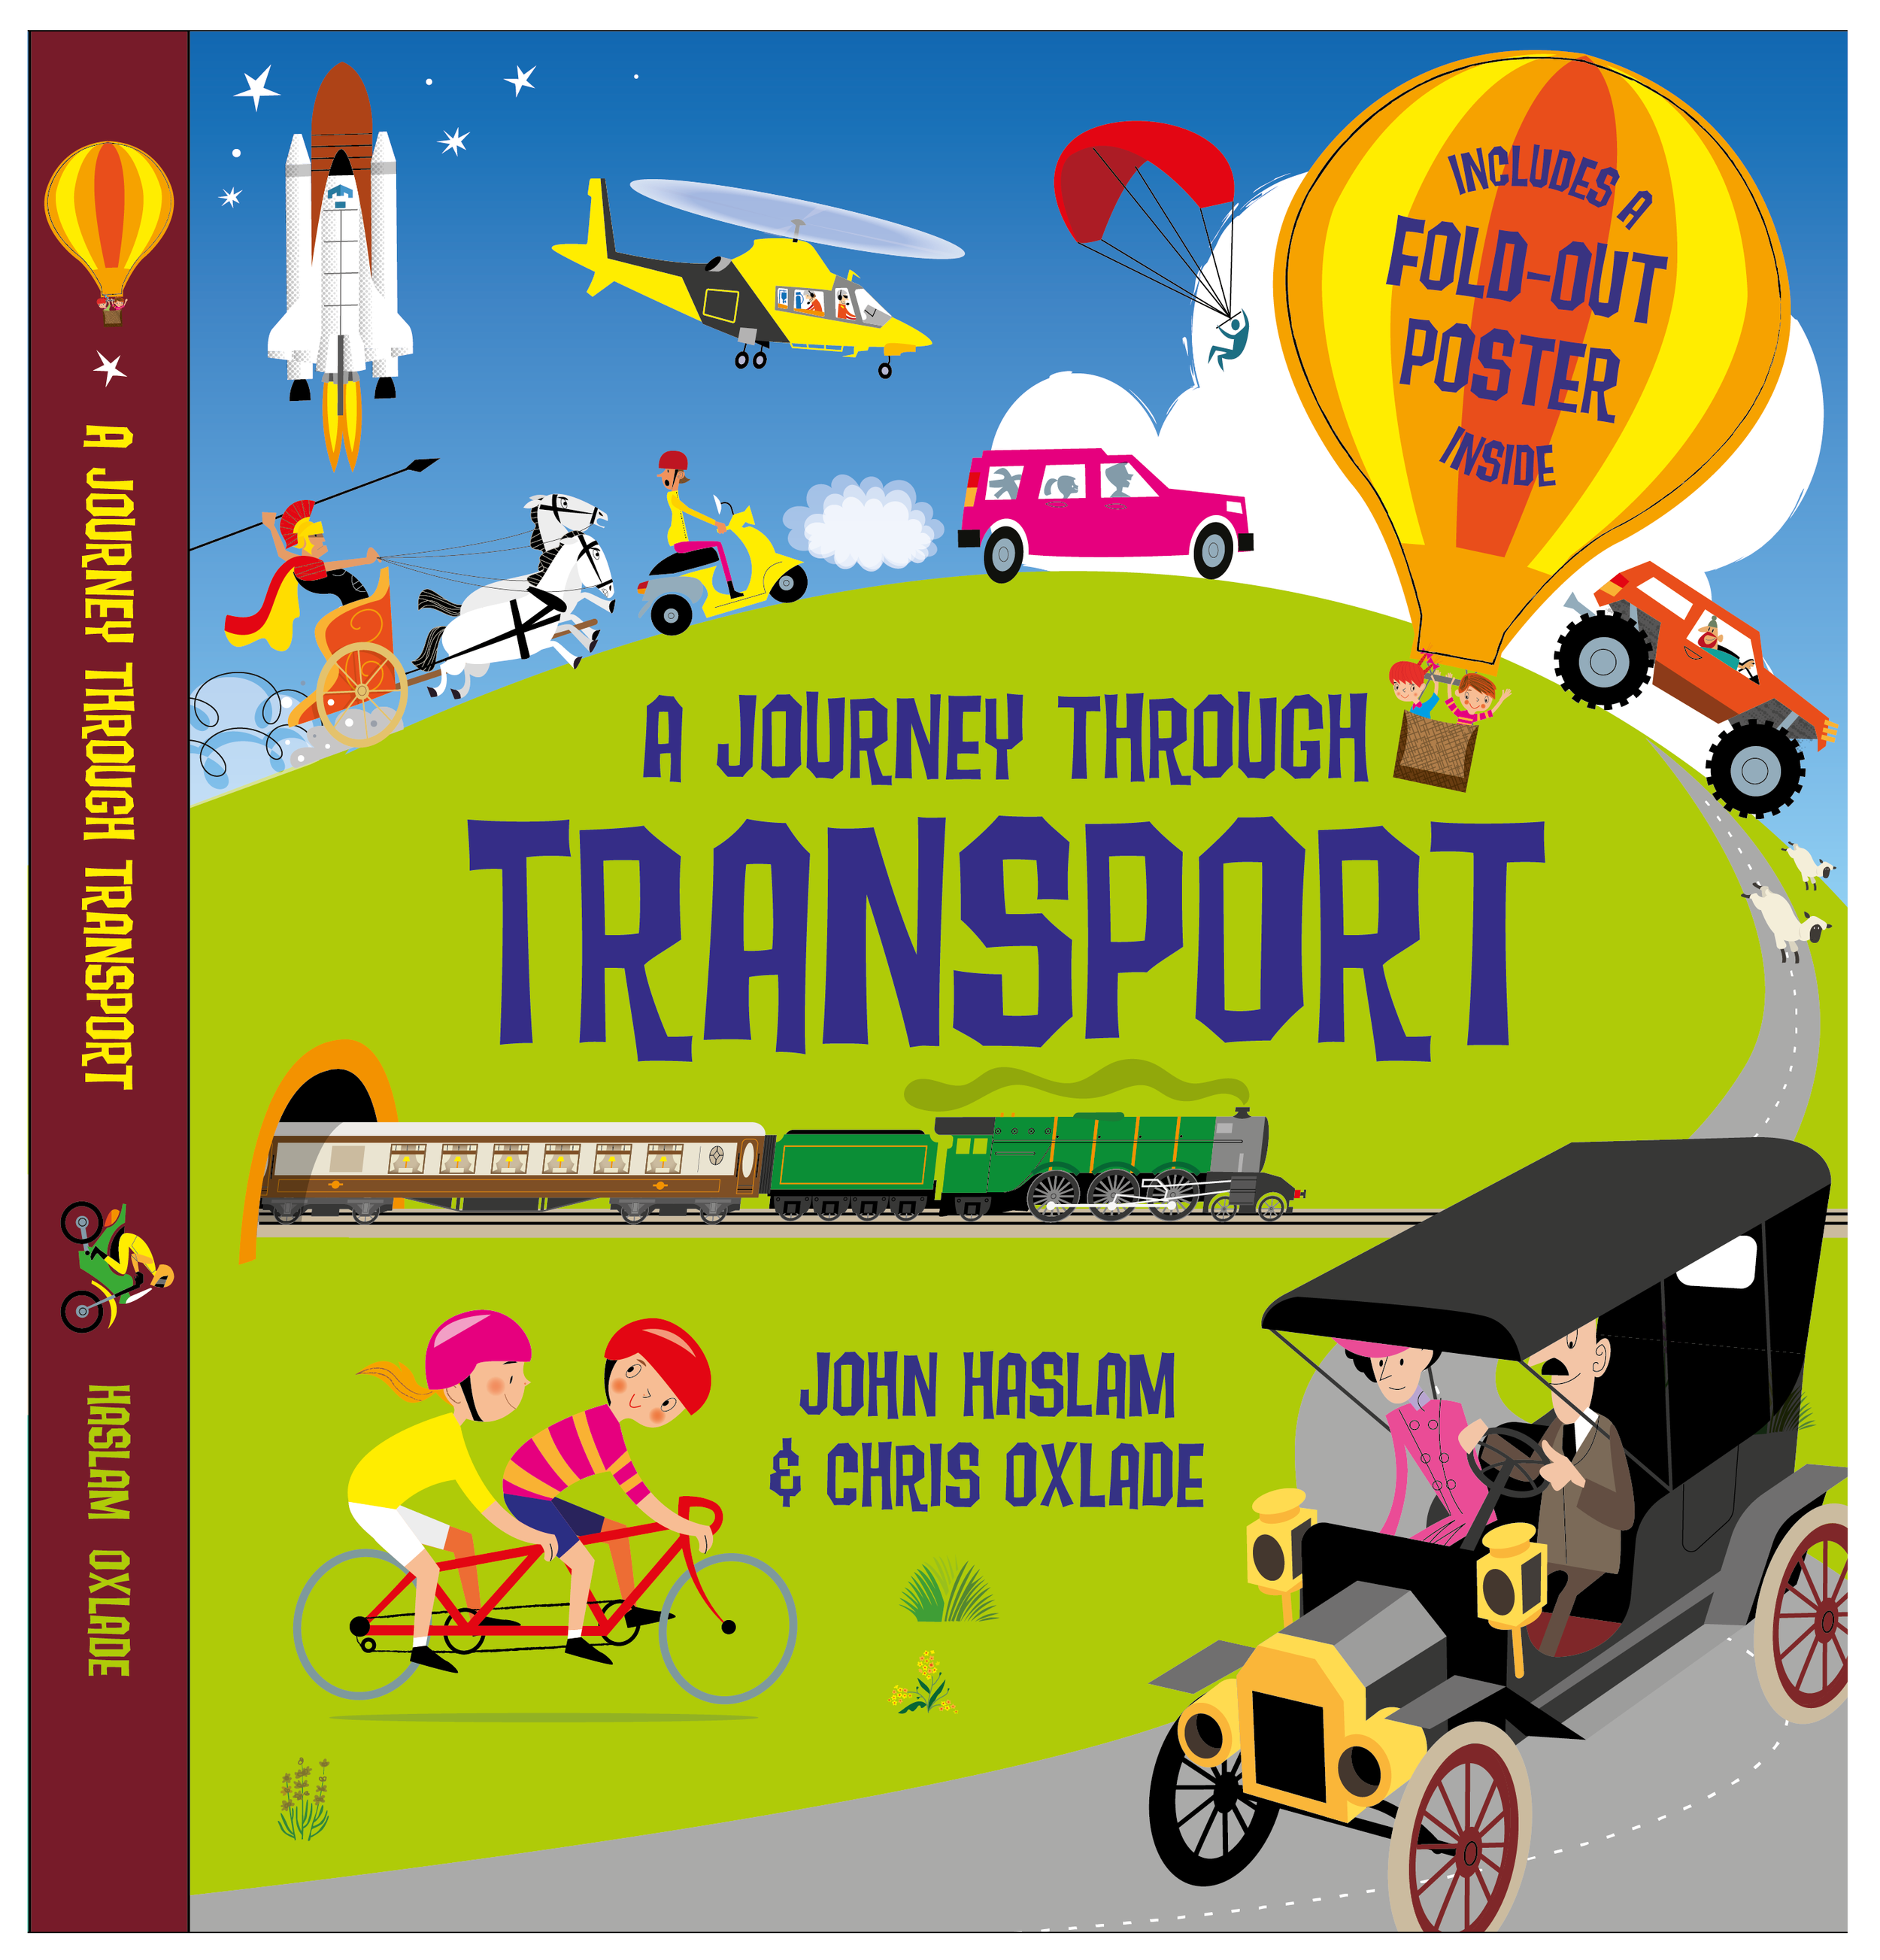 A Journey Through Transport